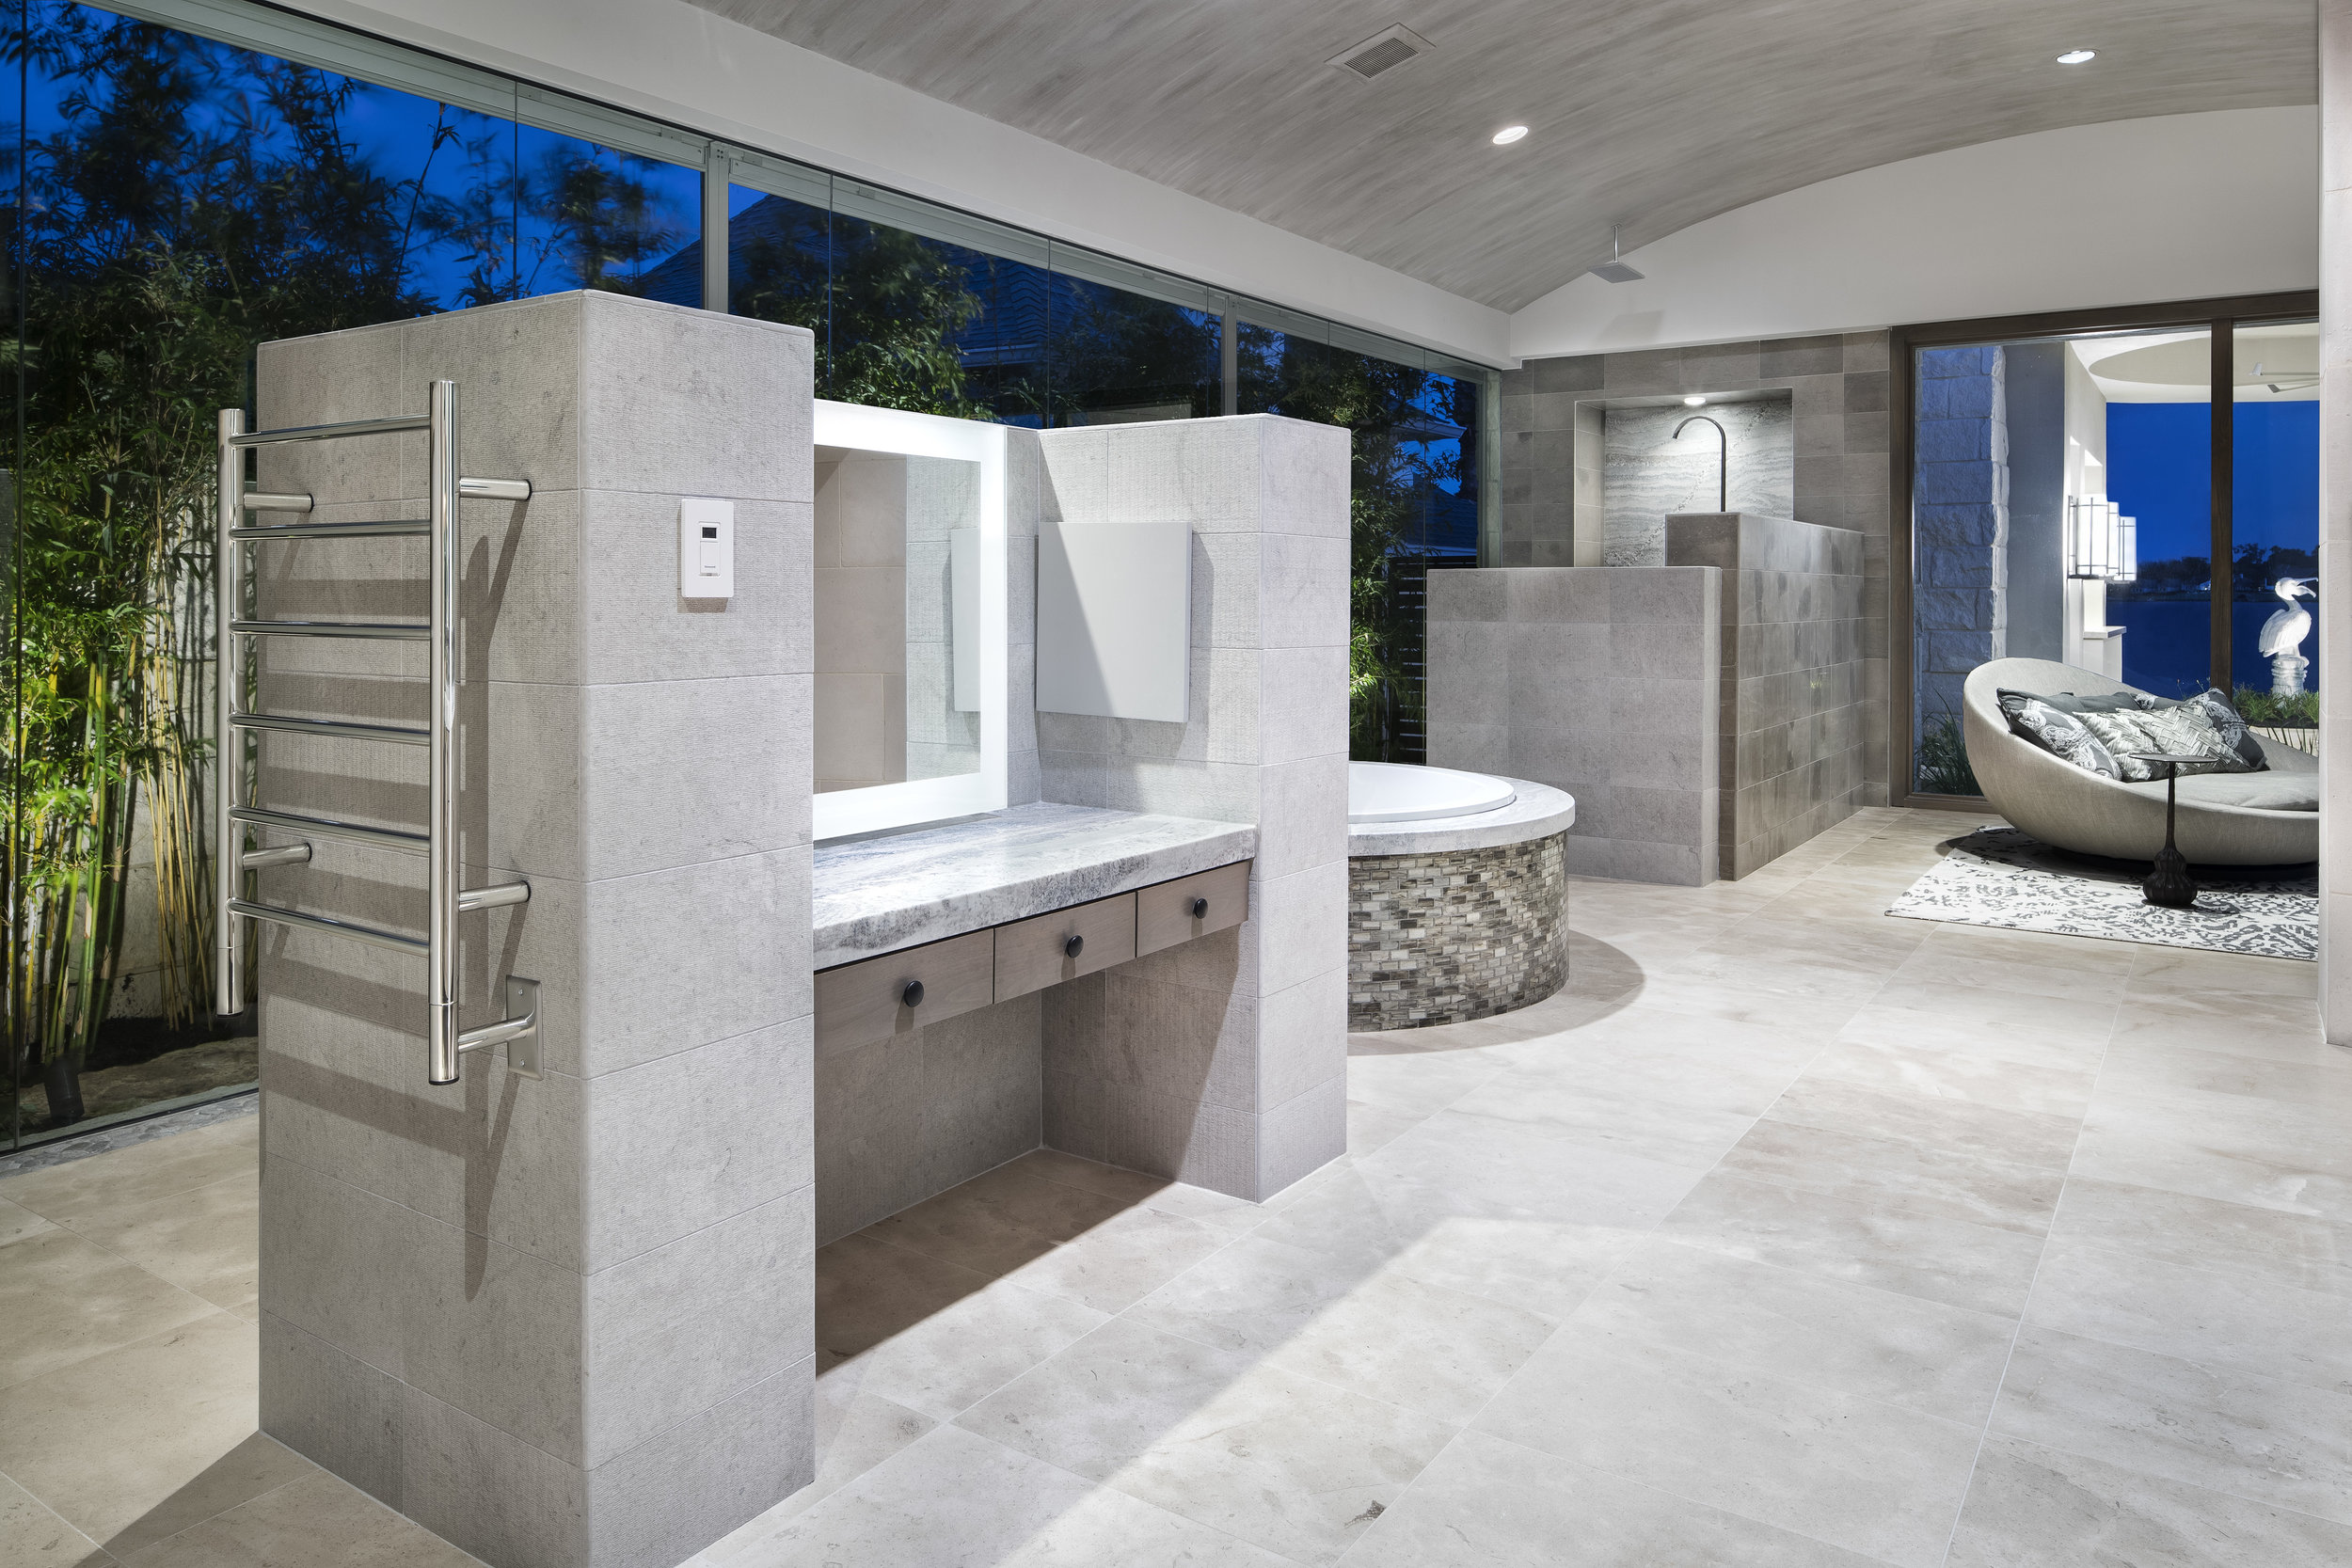 Susie Marion: Honoring the Architecture - The best interior selections are the ones that highlight and work in complete harmony with the architecture. I draw my inspiration from your floor plan and elevations. The minute the drawing hit my desk I